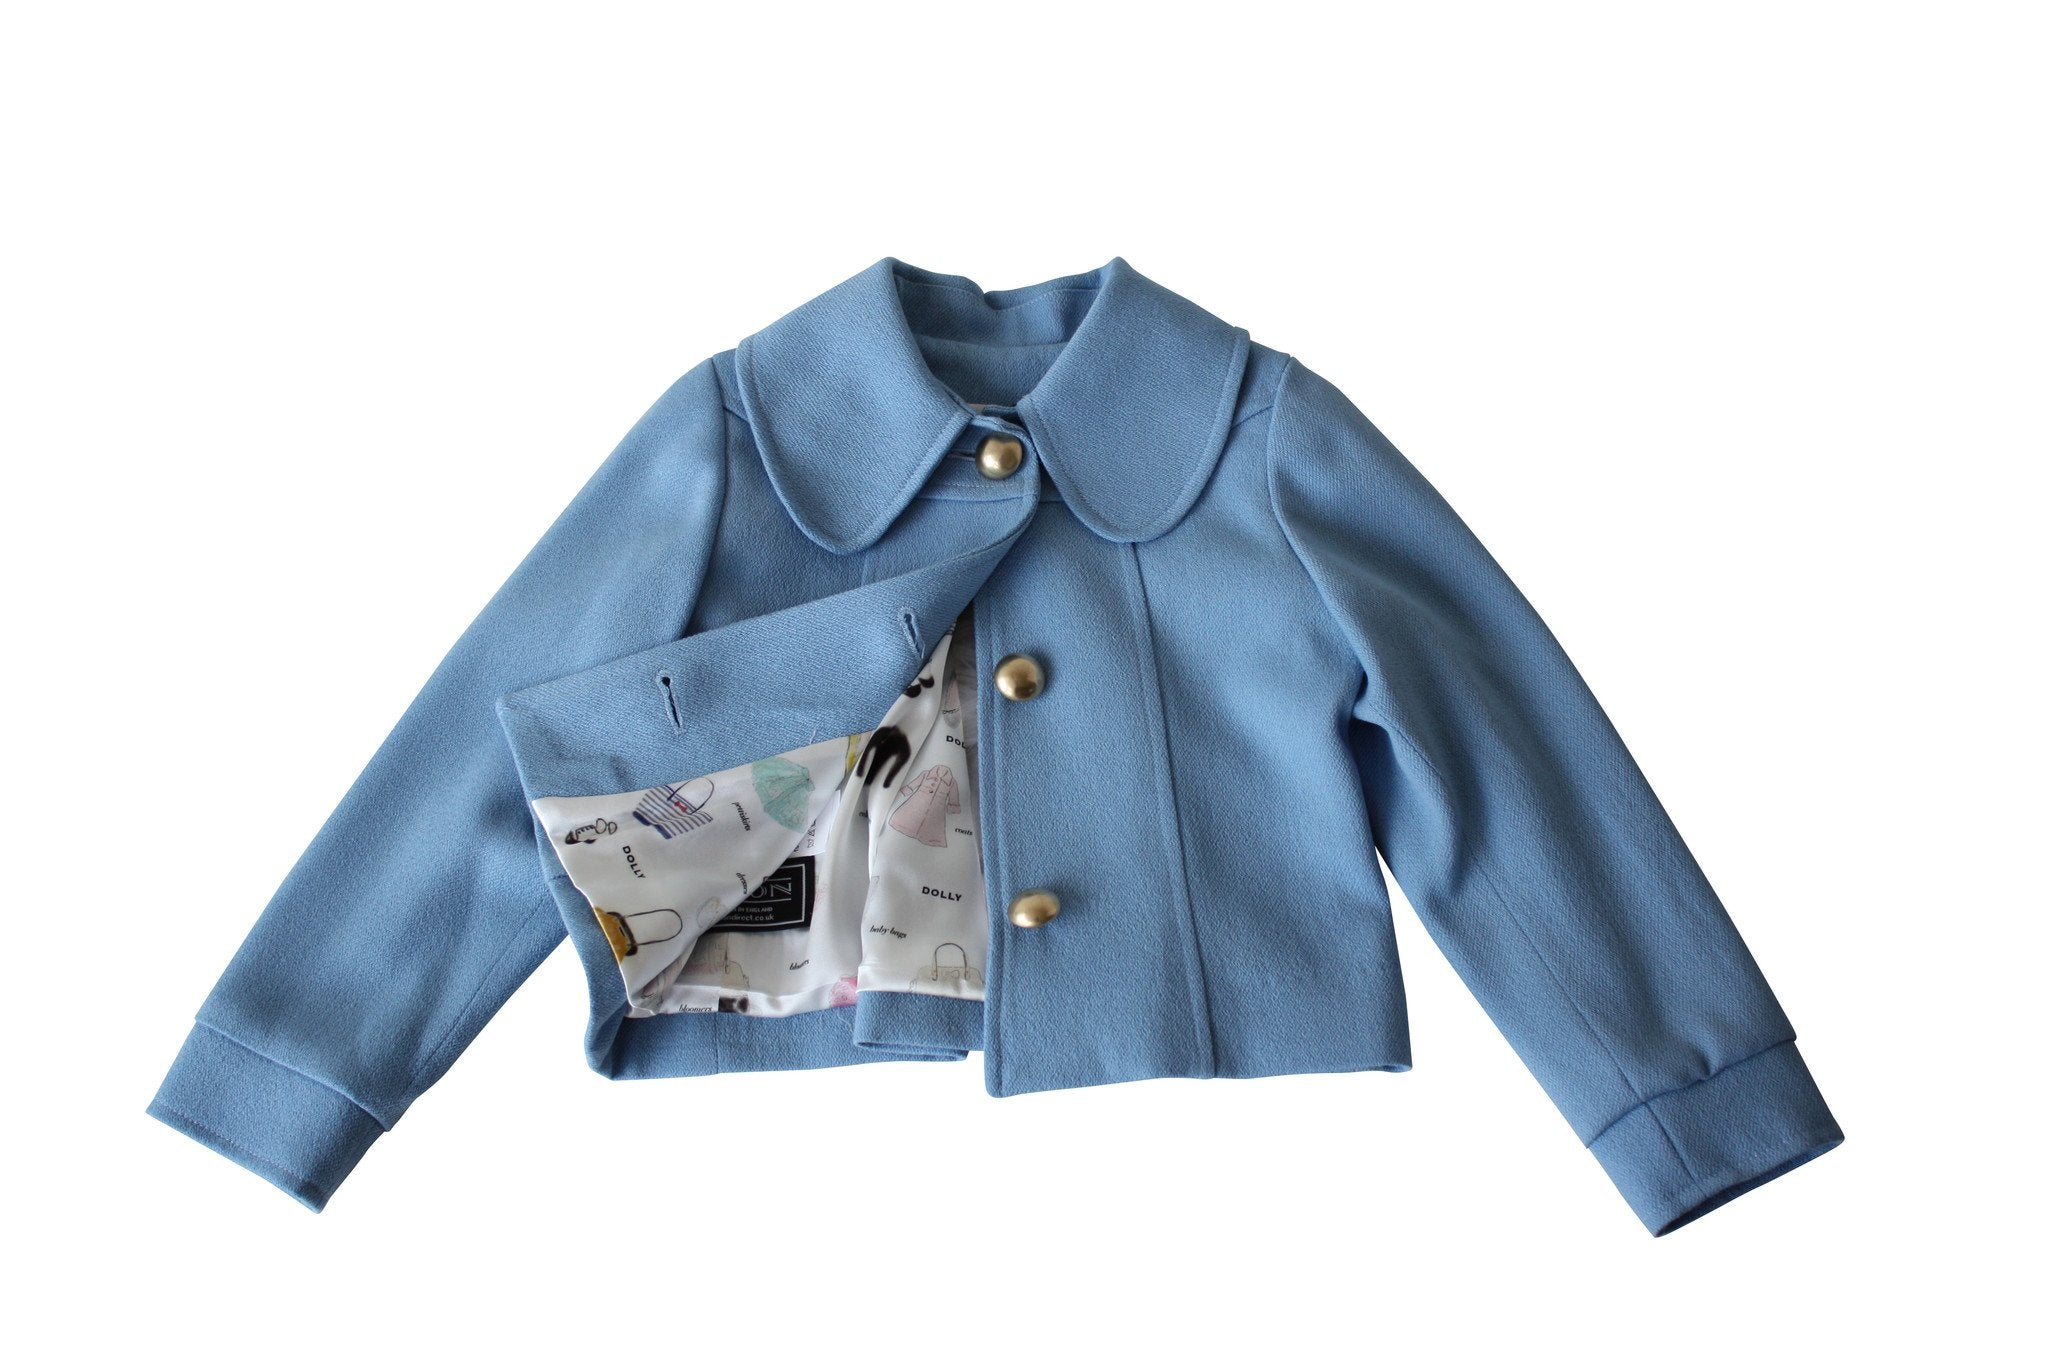 LA DOLLY 'the  DOLL JACKET & SCARF' crepe - made in Italy - light blue